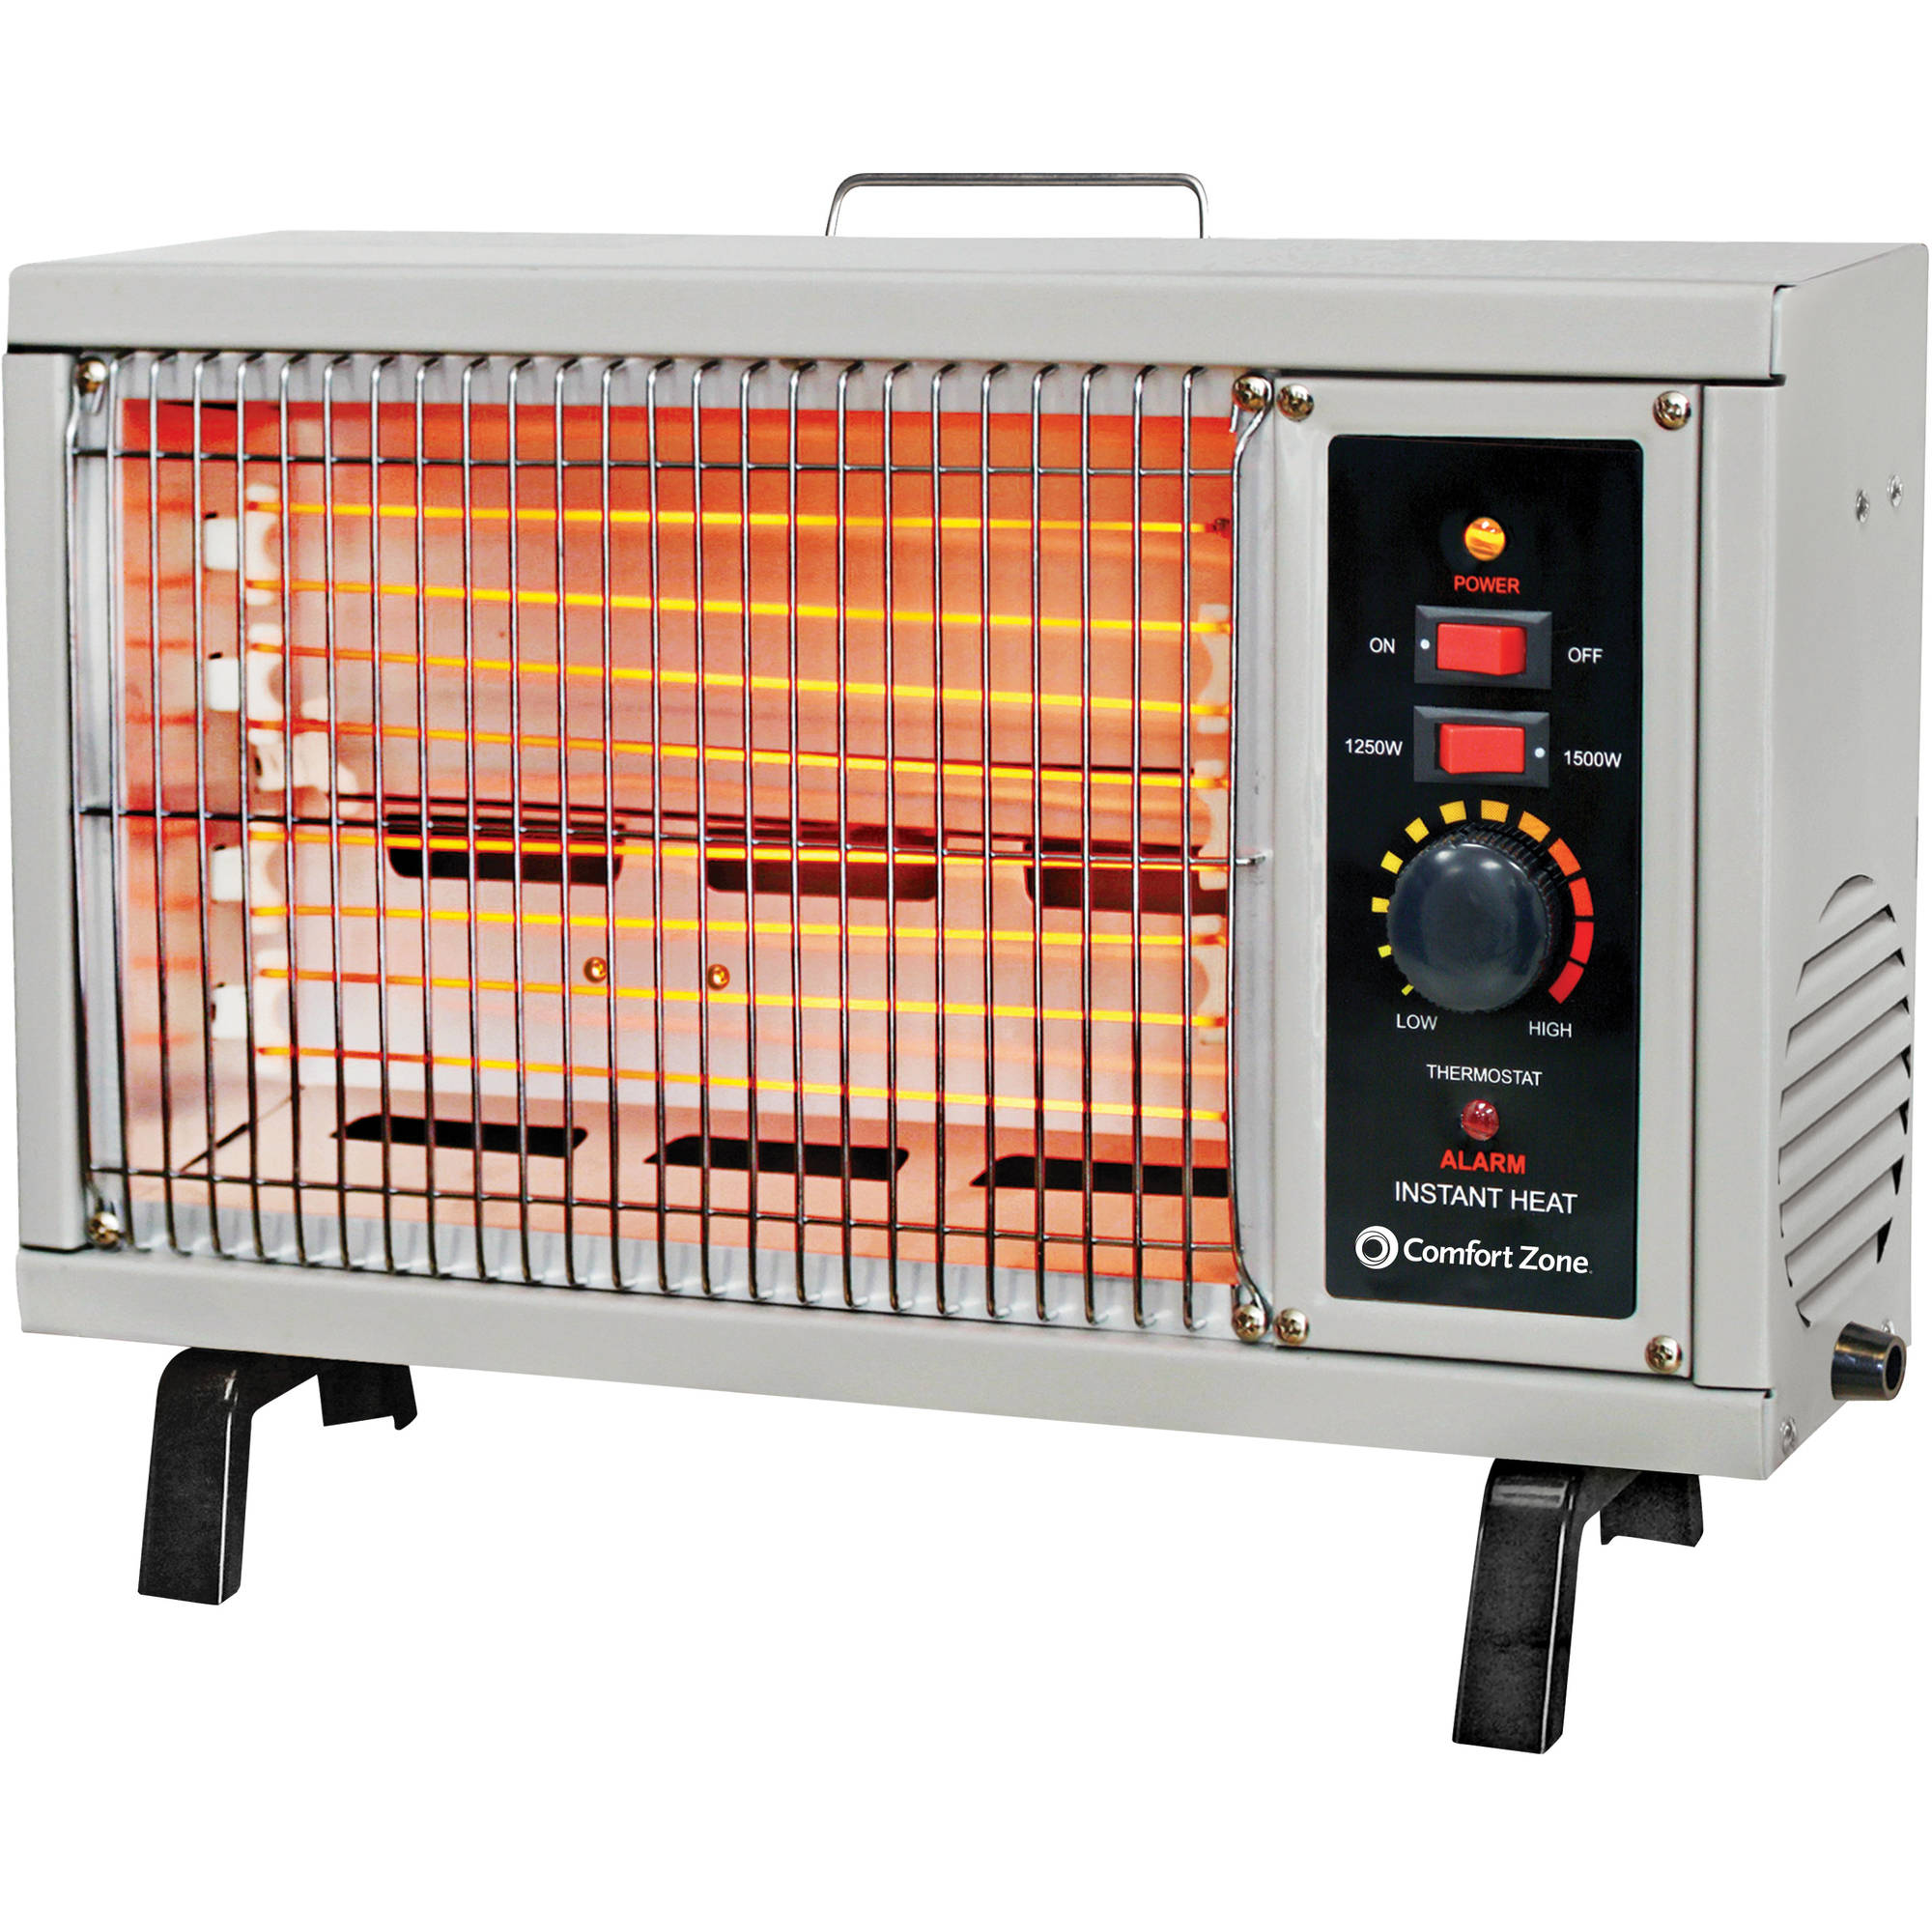 Comfort Zone 5,120-BTU Electric Radiant Heater, Gray CZ530WM ...